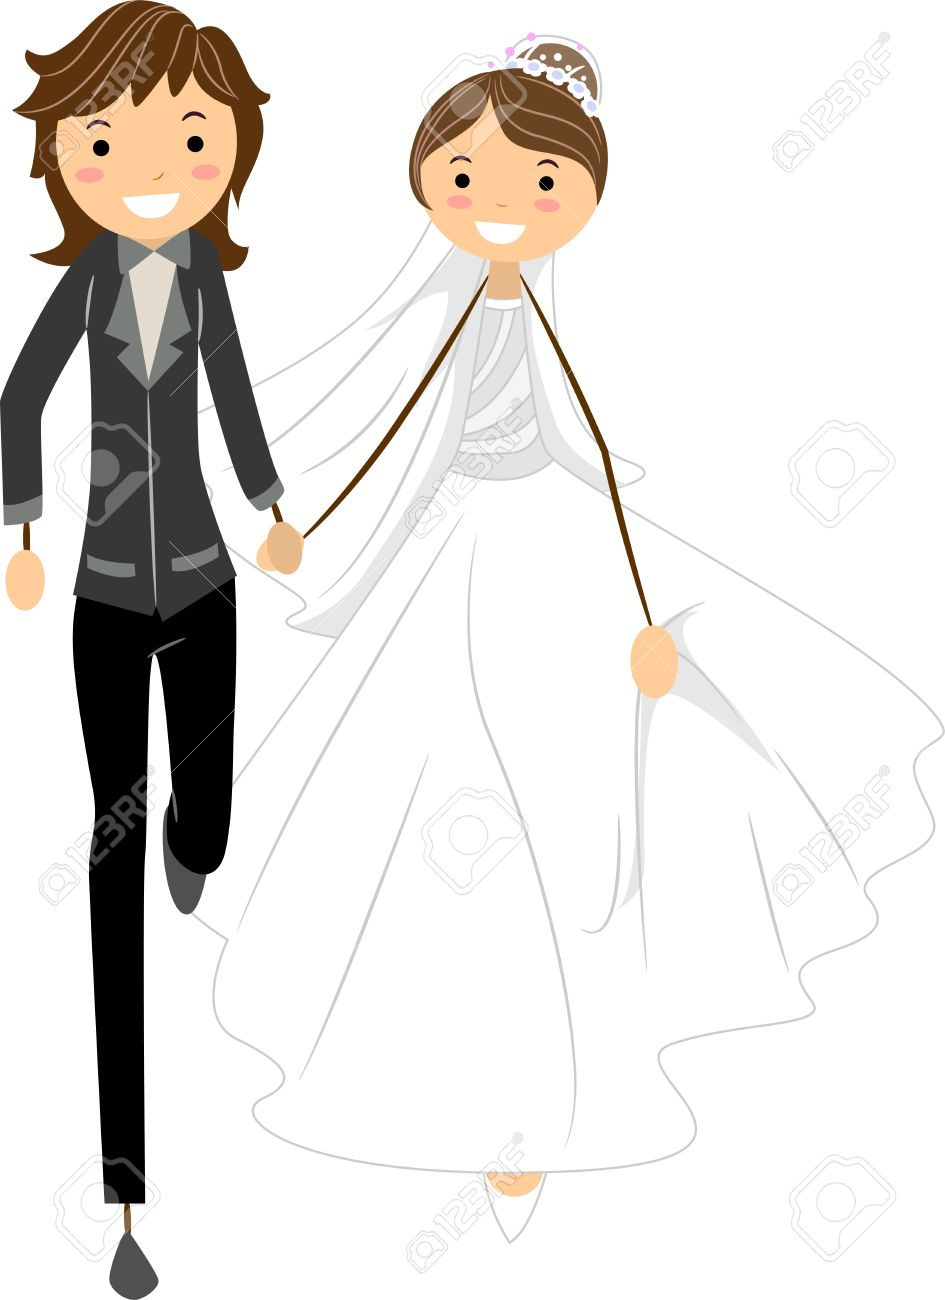 illustration of a lesbian couple on the run stock photo, picture and